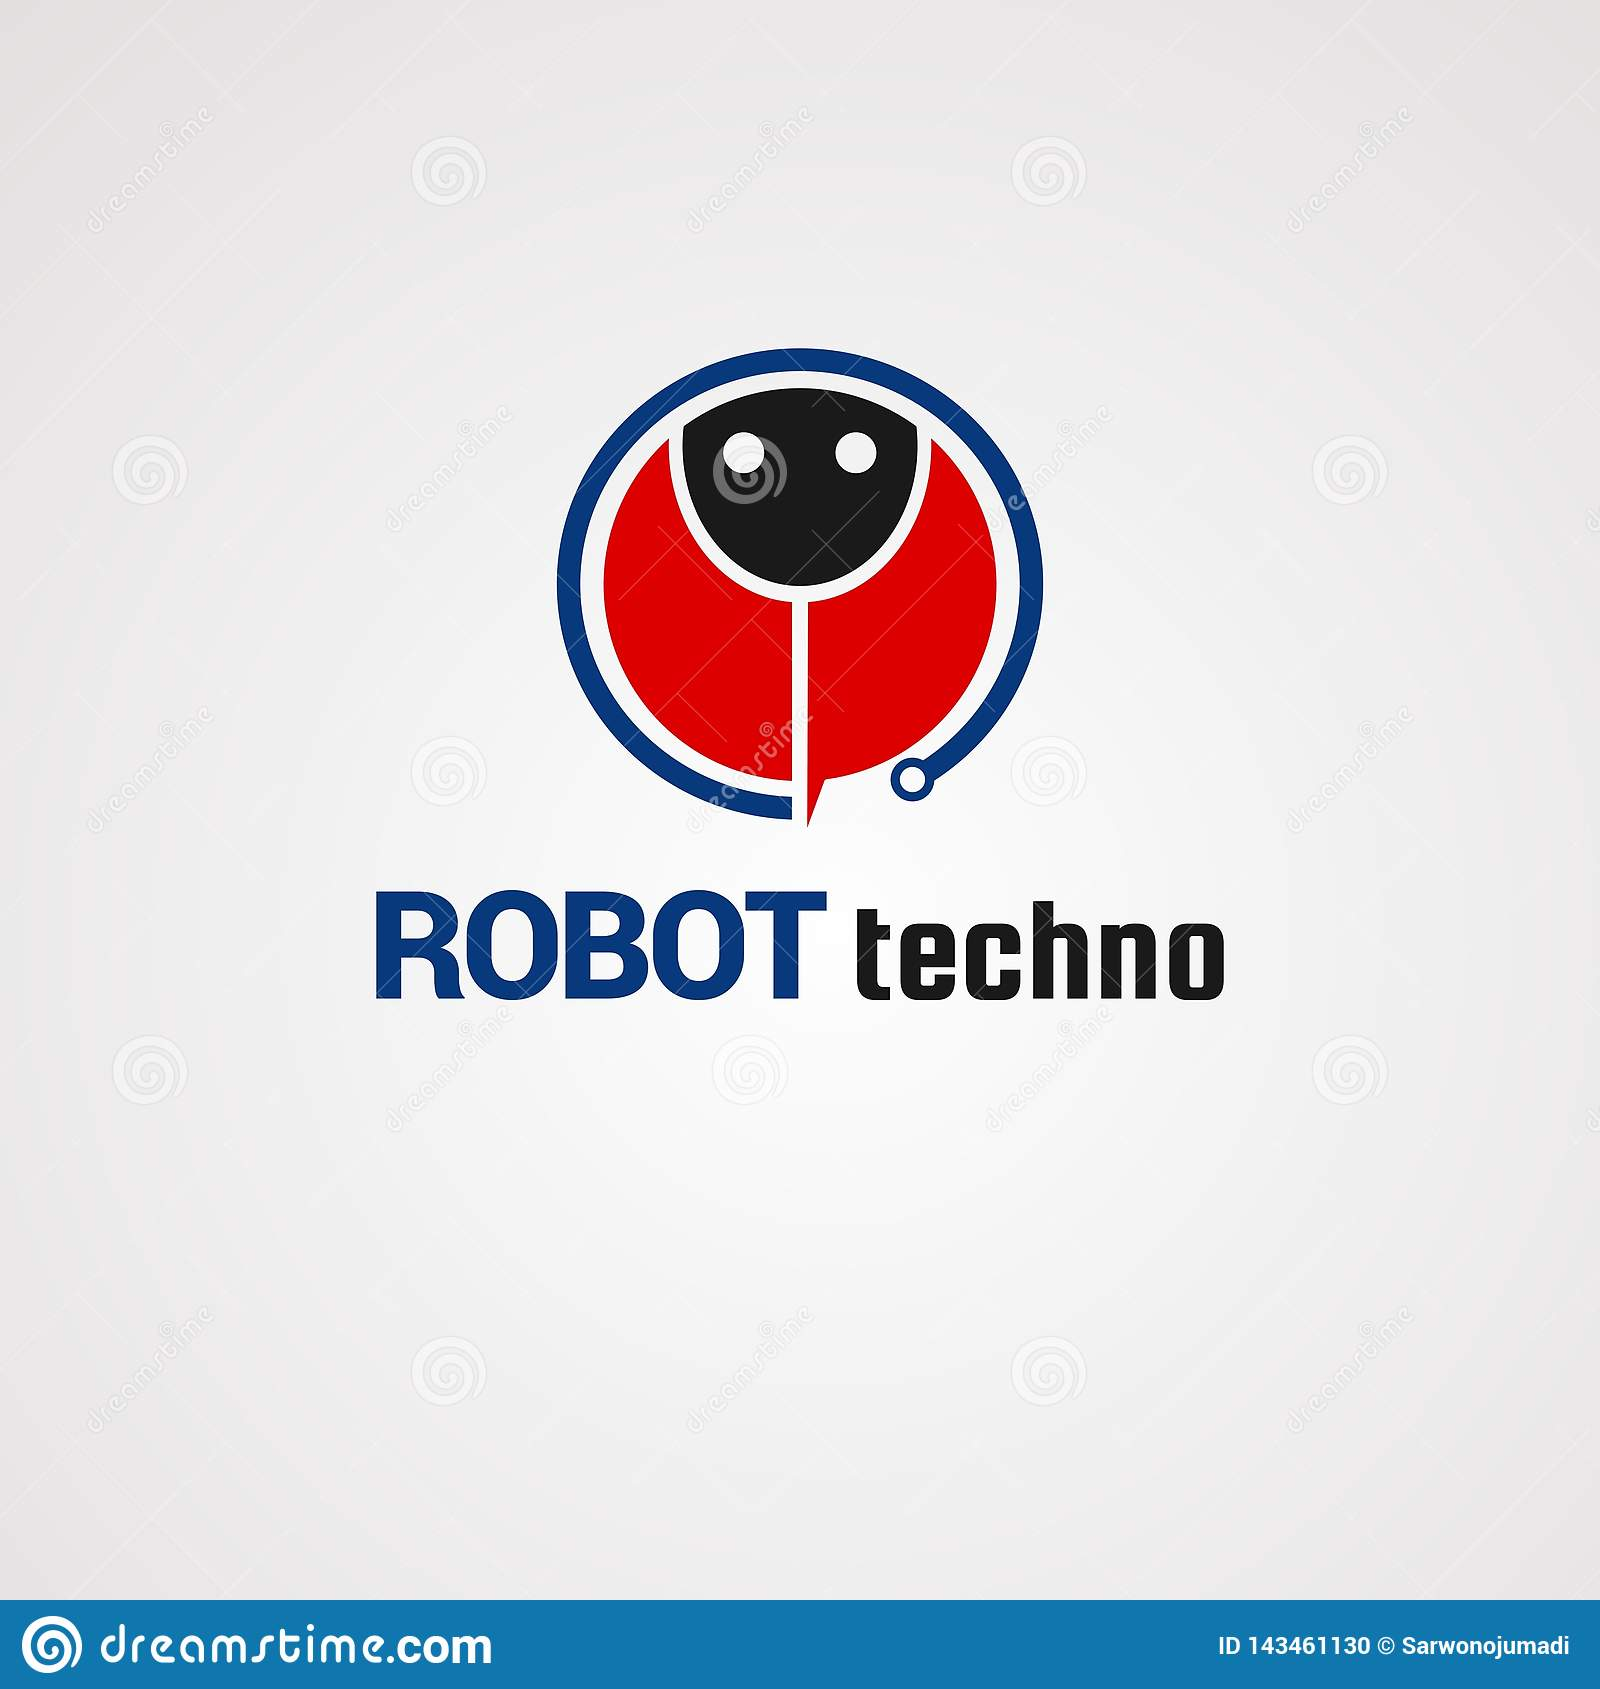 Robot techno logo vector, icon, element, and template for company